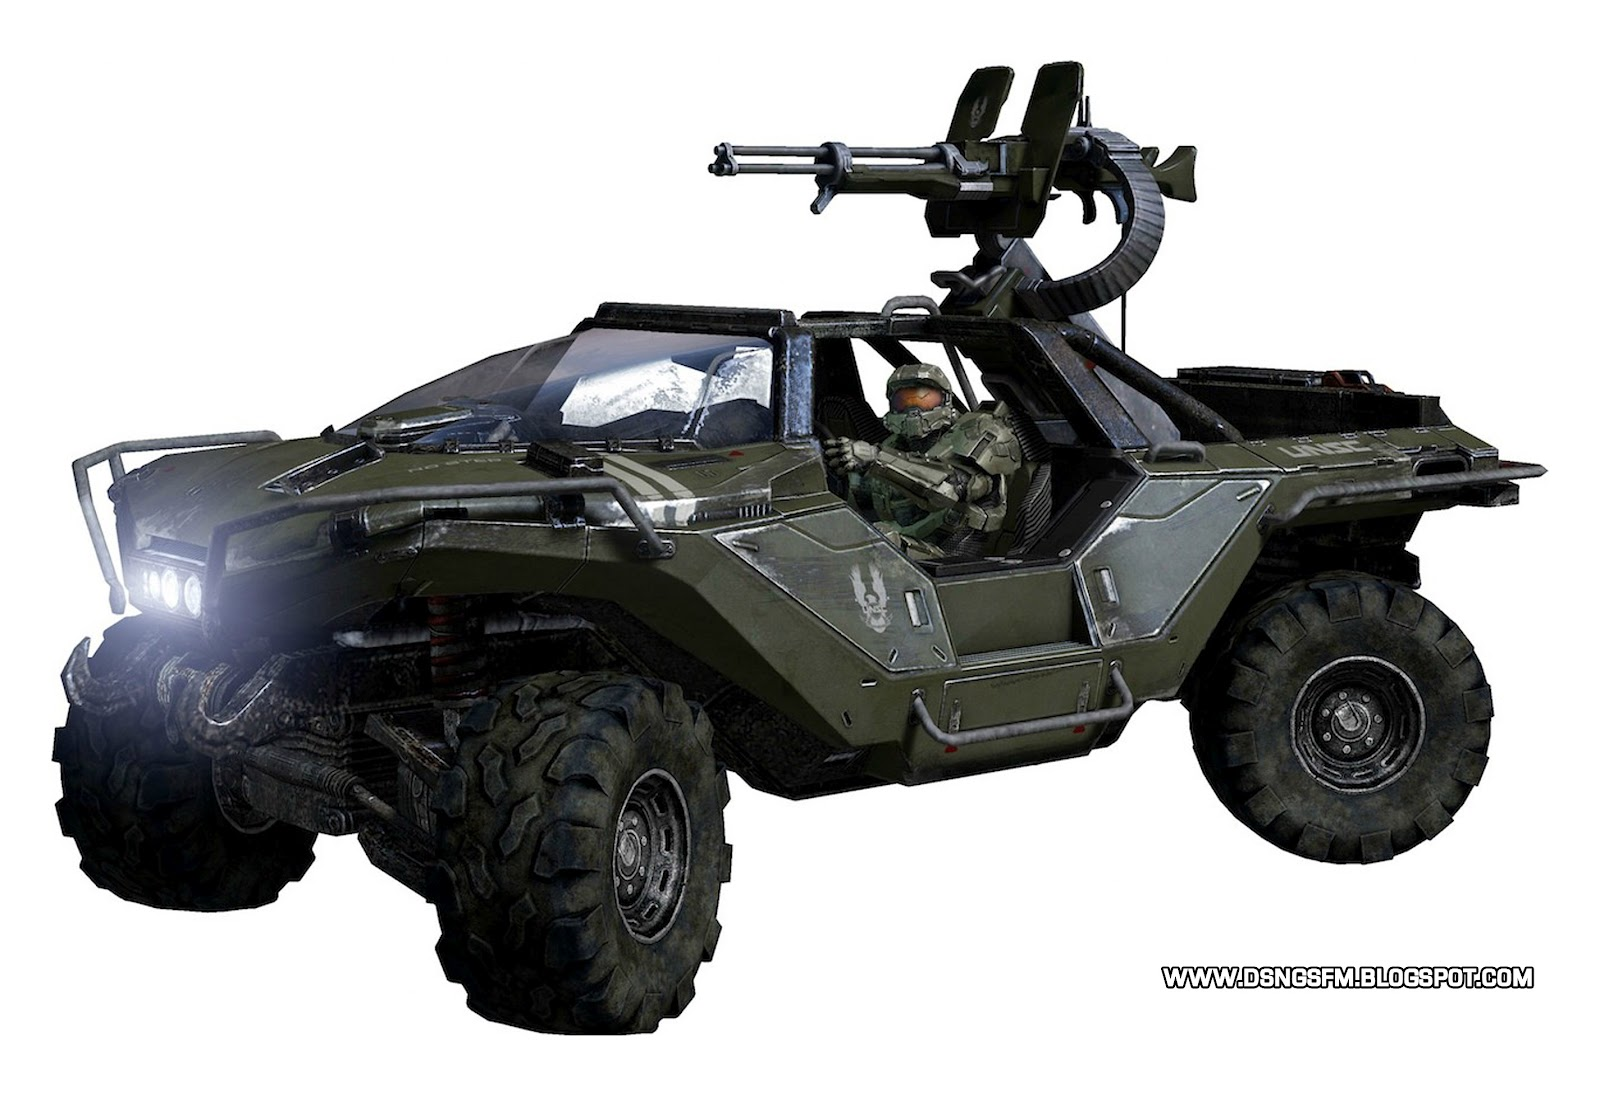 Sci Fi Vehicles Concept Art http://dsngsfm.blogspot.com/2012/09/halo-4-concept-art-armor-weapons-and.html